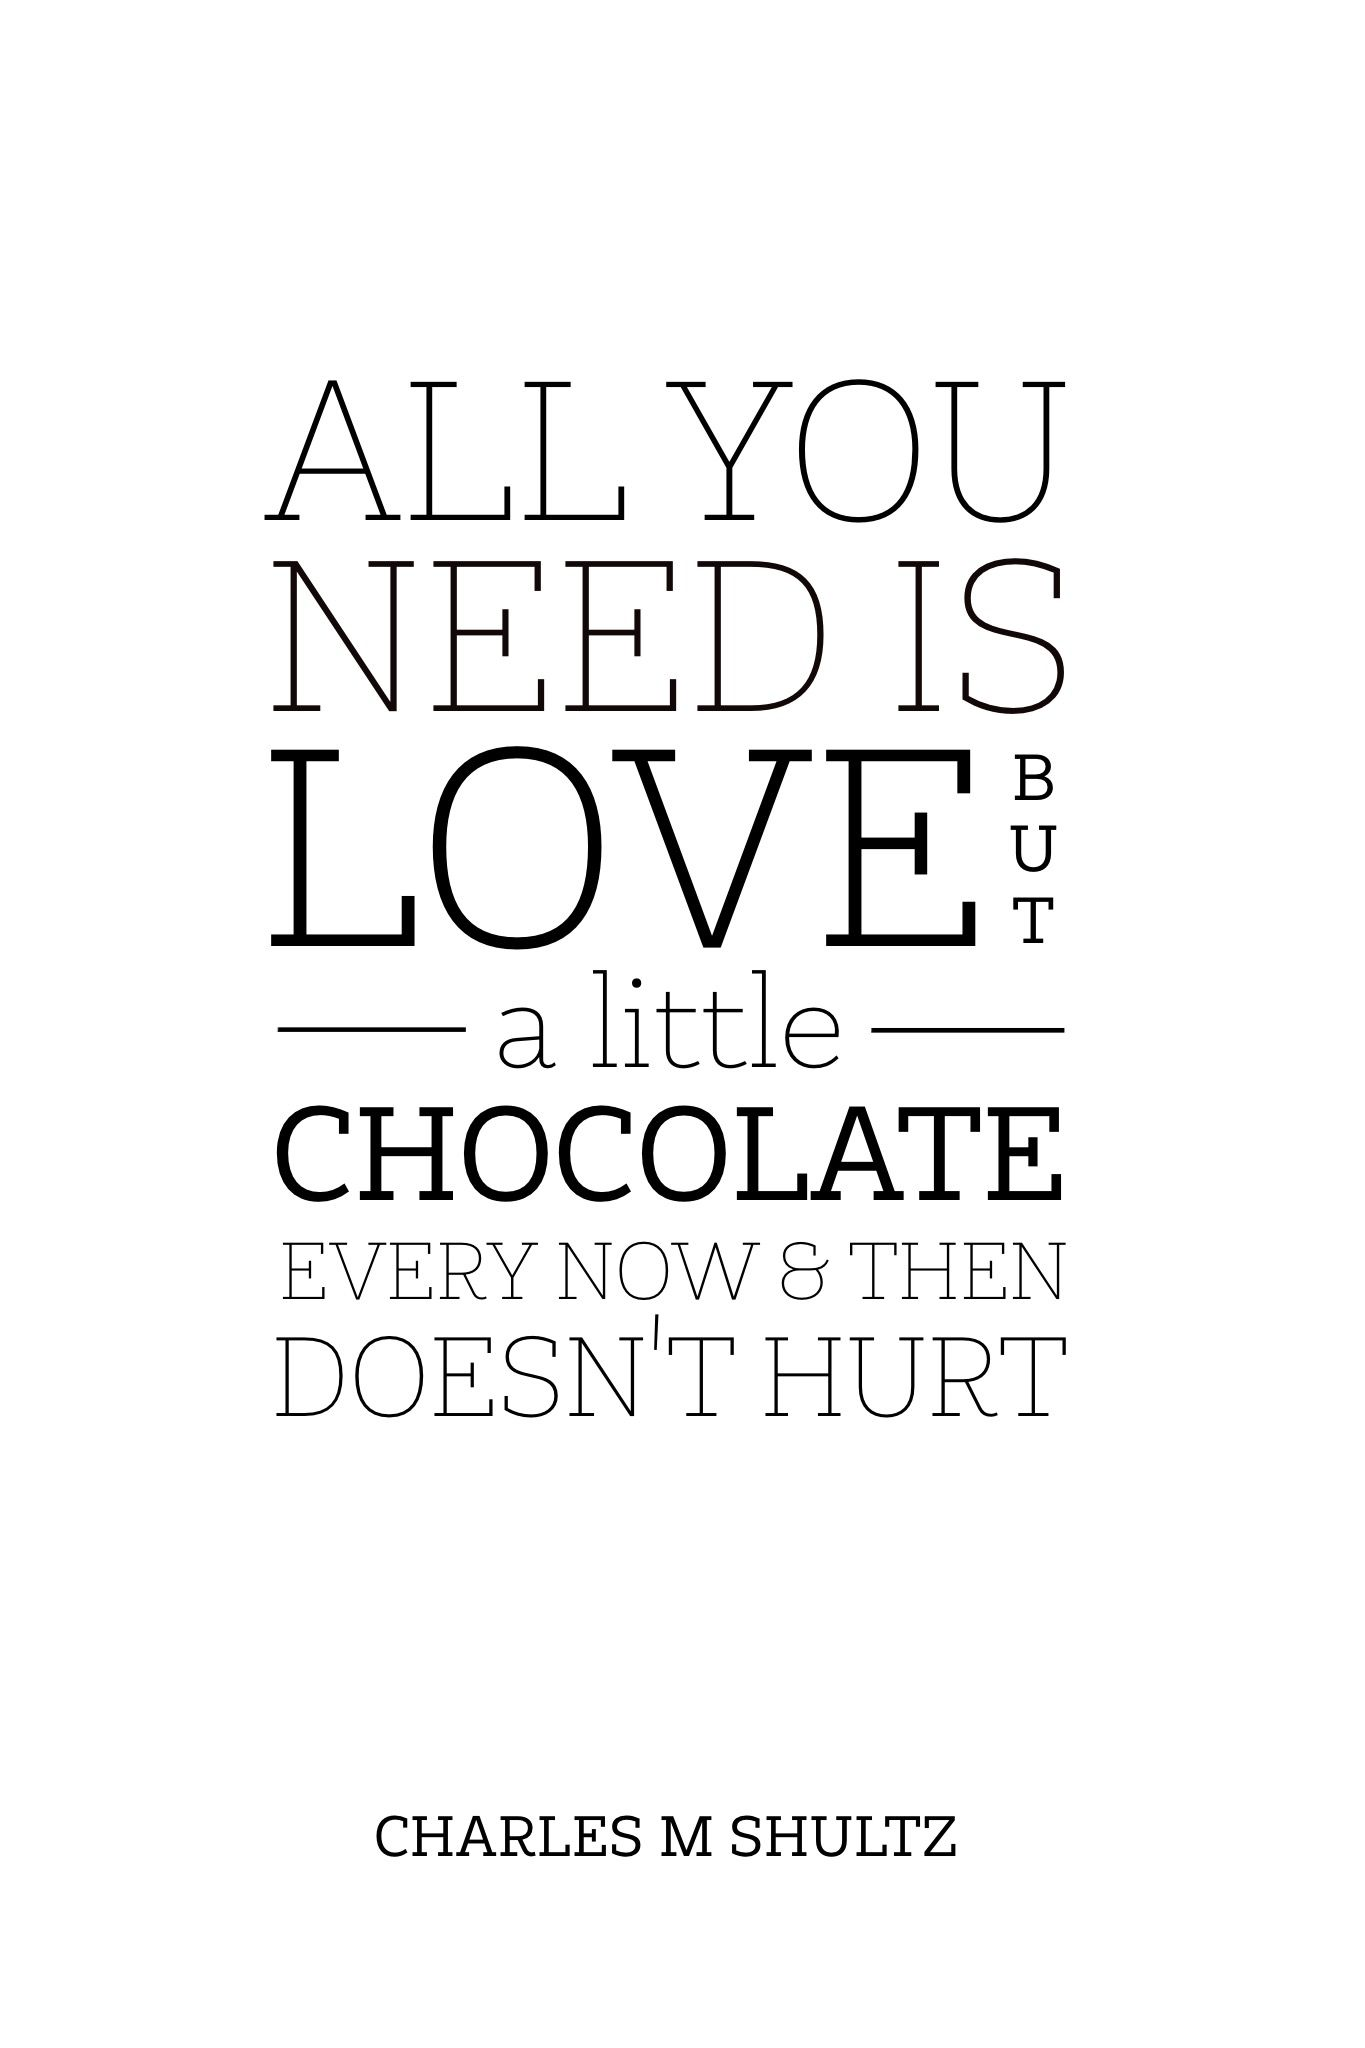 All you need is love but a little chocolate every now and then ...